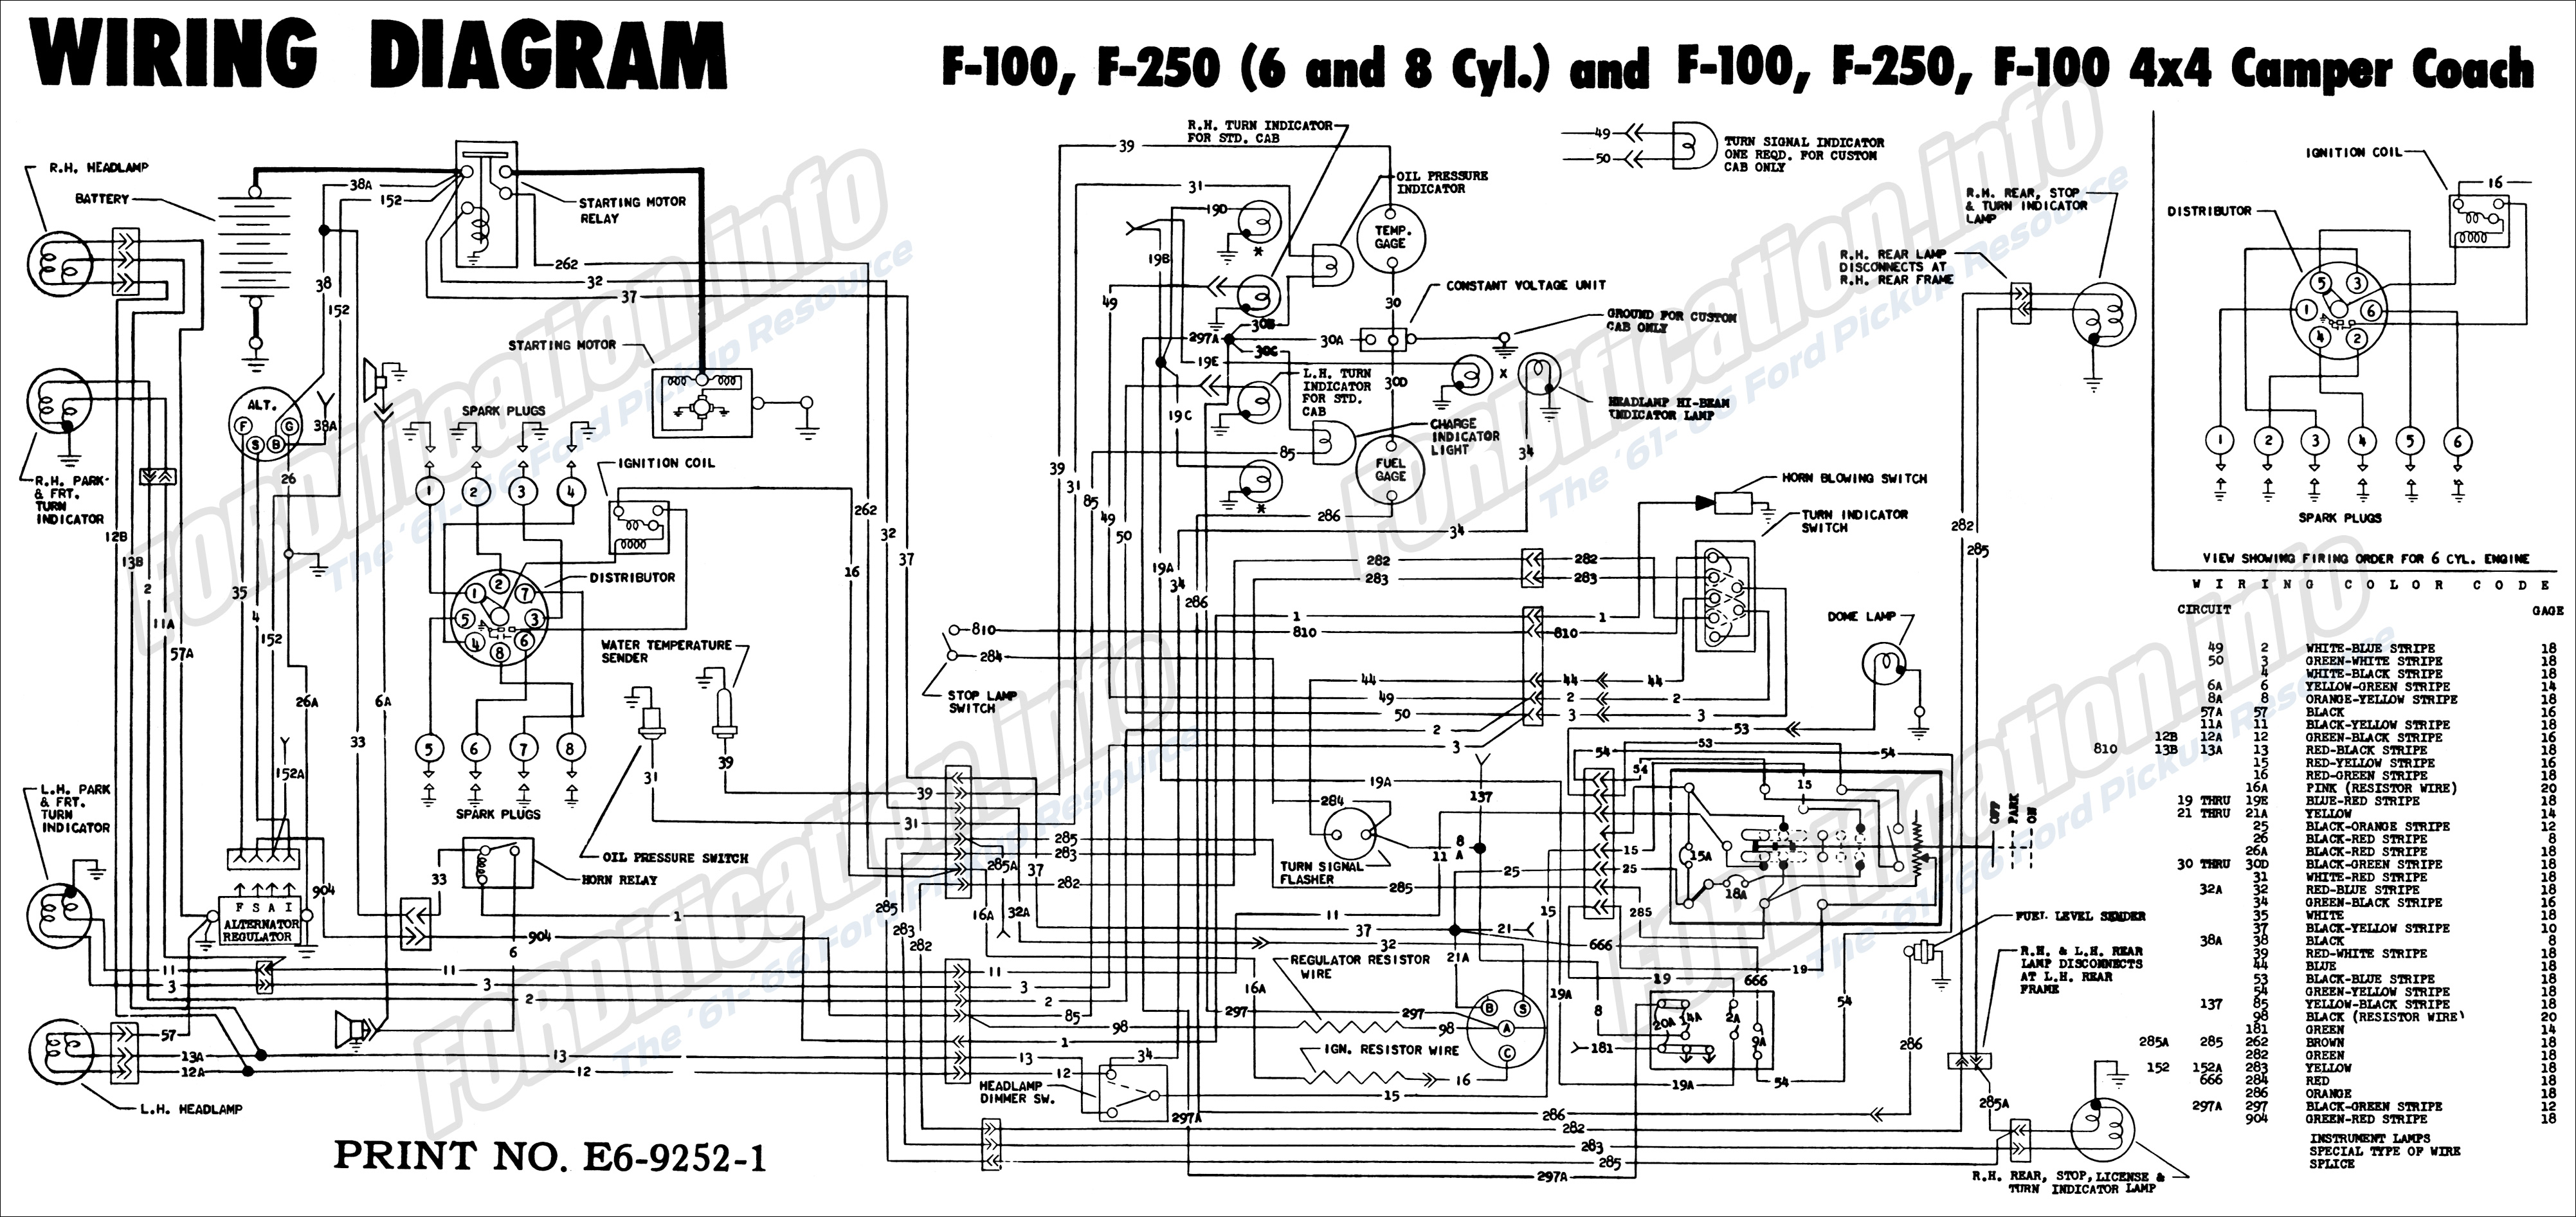 1969 Ford F150 Wiring Diagram • Wiring Diagram For Free